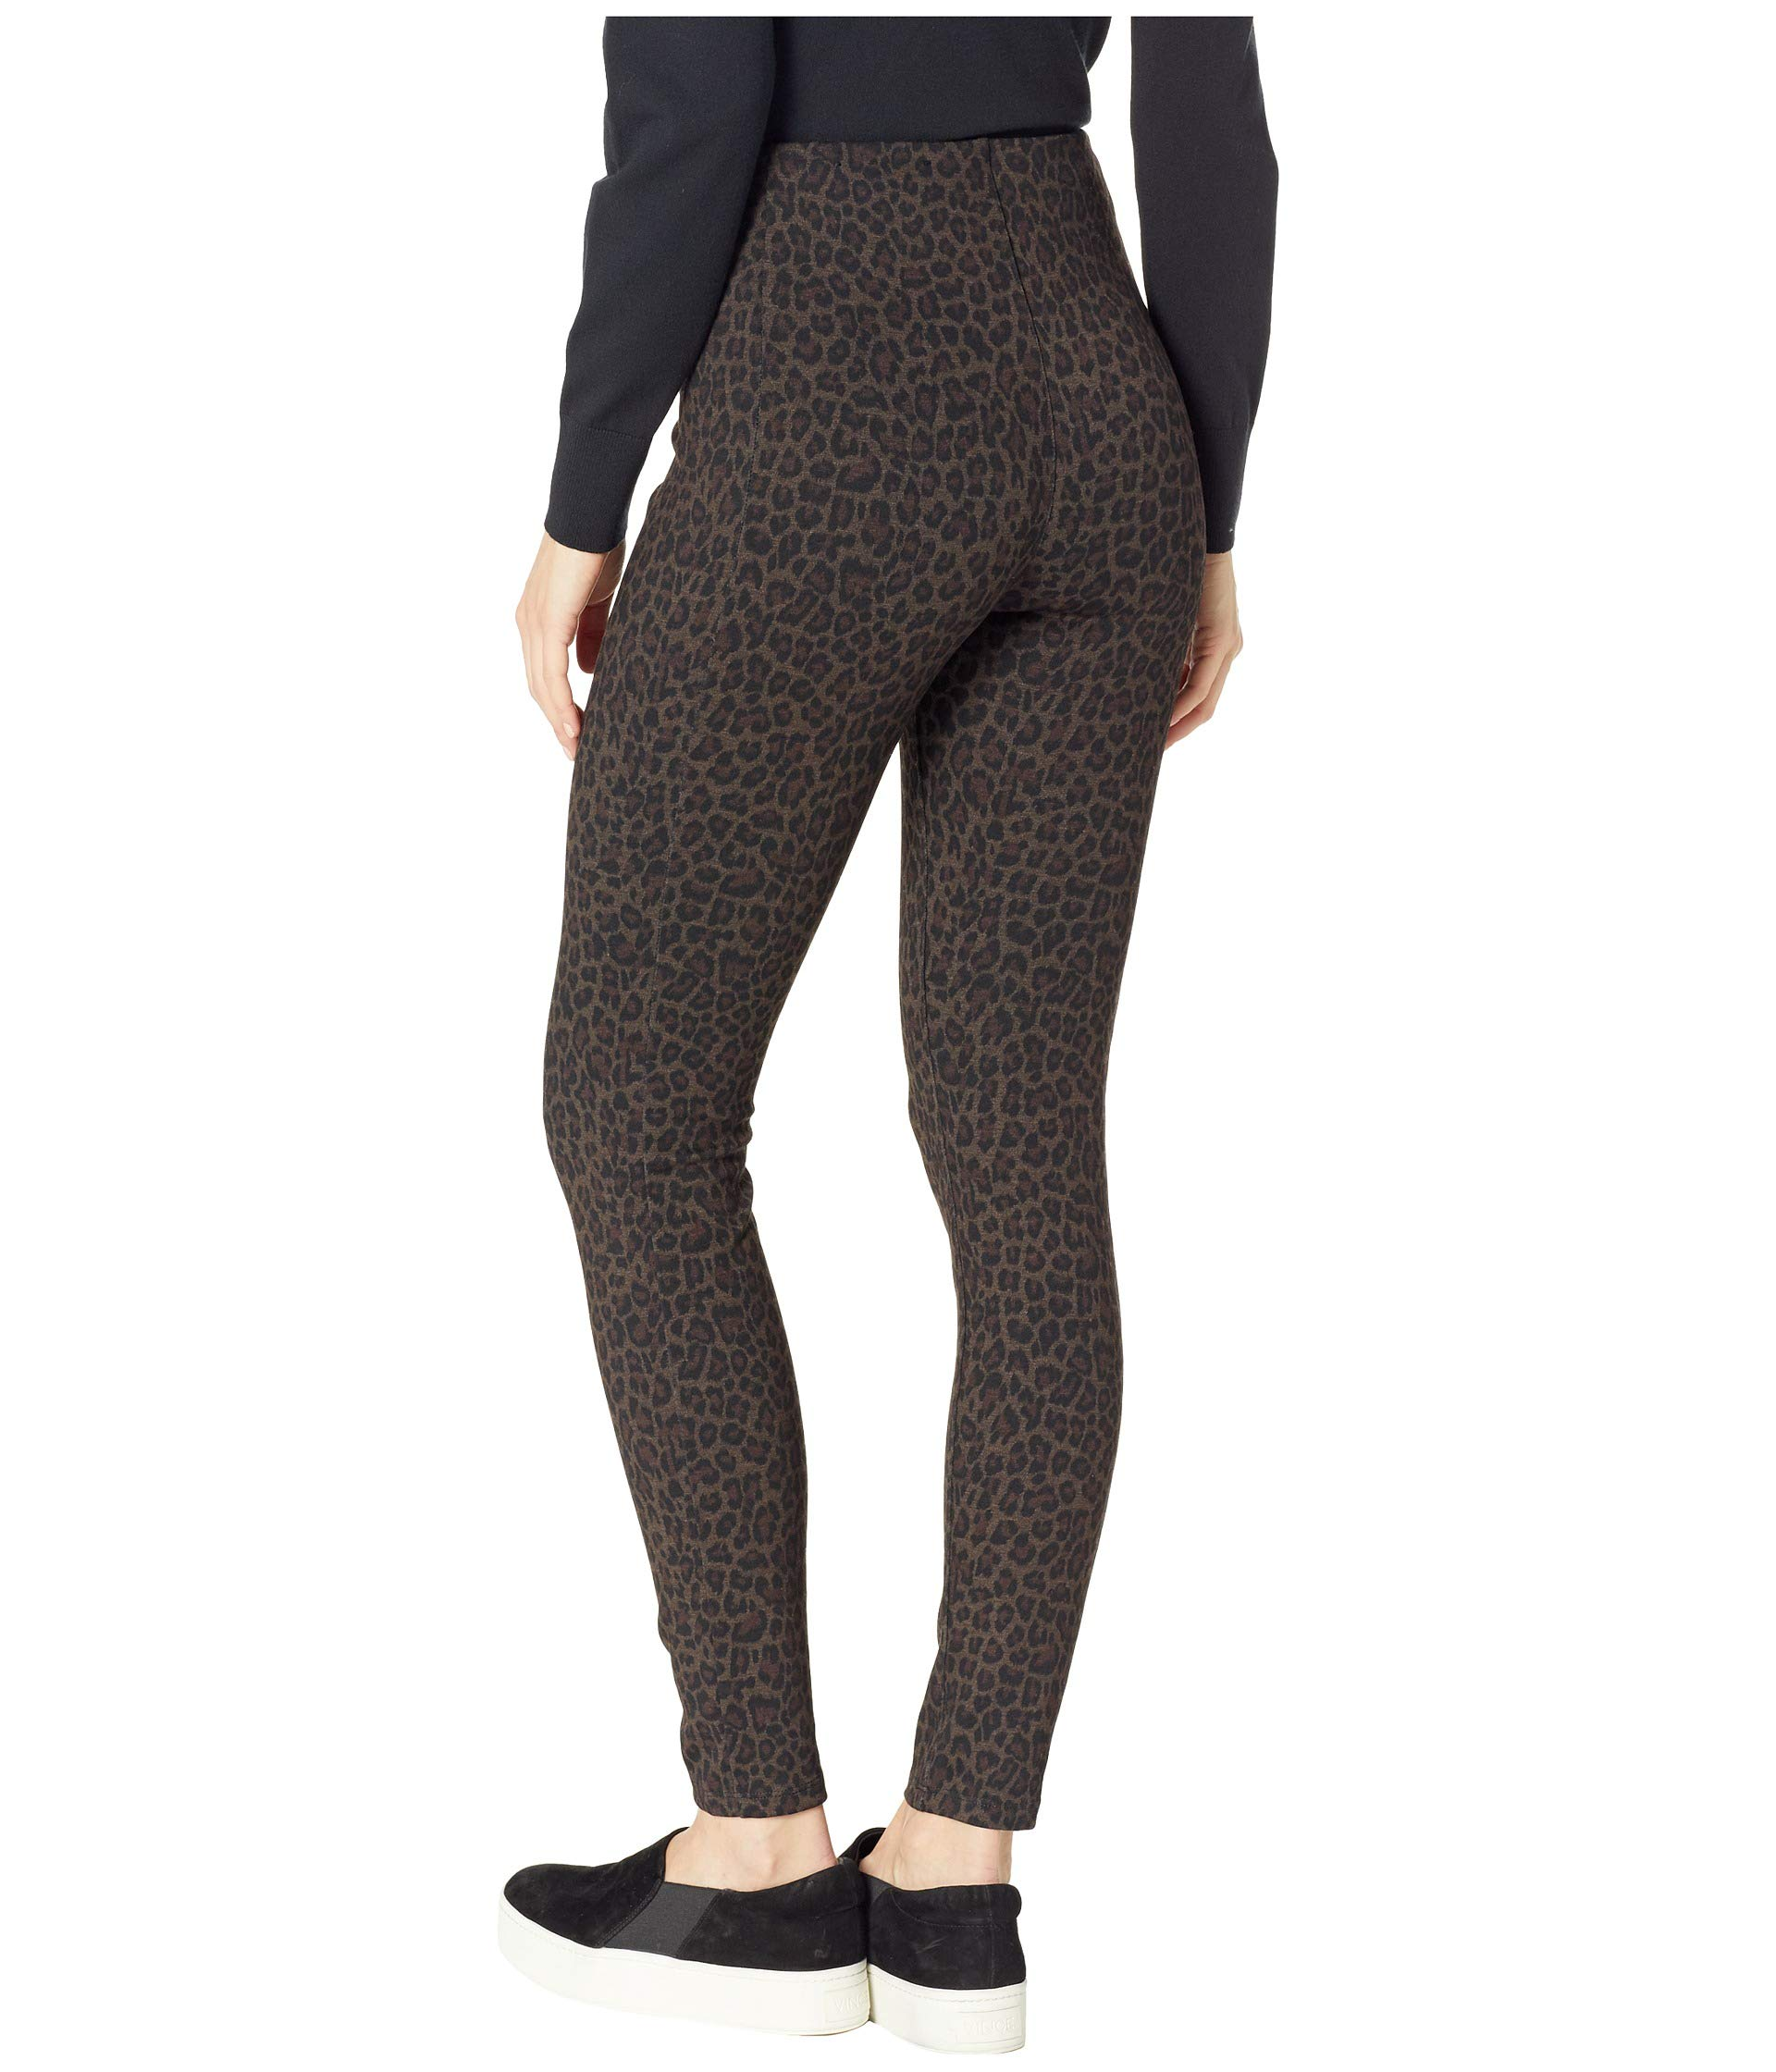 Leggings Liverpool Ponte Ankle Knit Reese Cheetah In rise High Patterned AqqRB1xIw